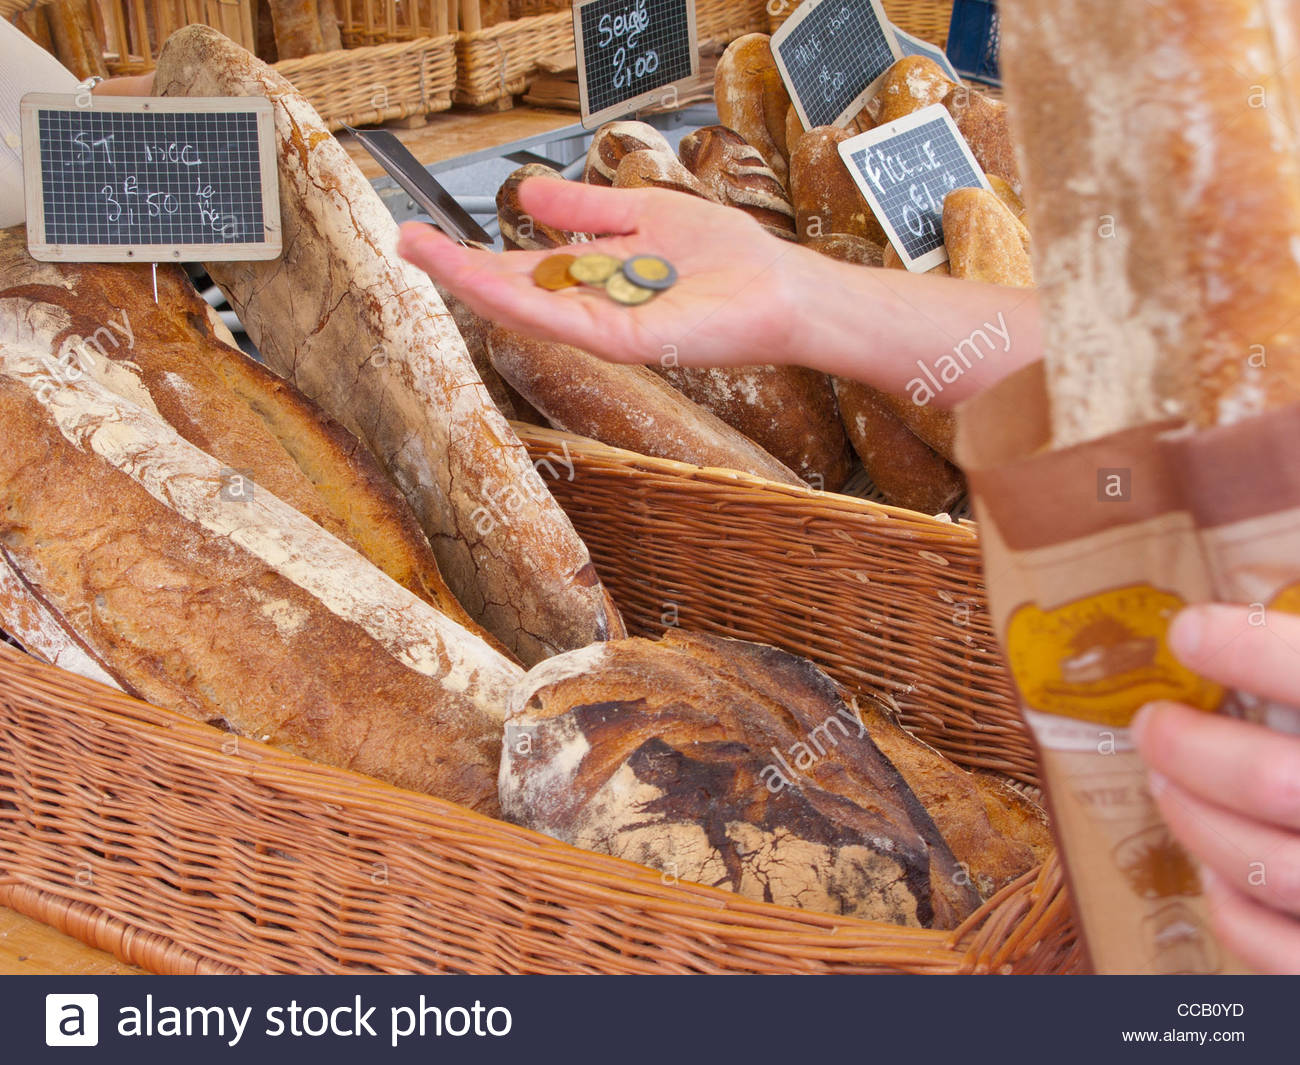 Woman holding coins buying rustic loaf of bread from market - Stock Image